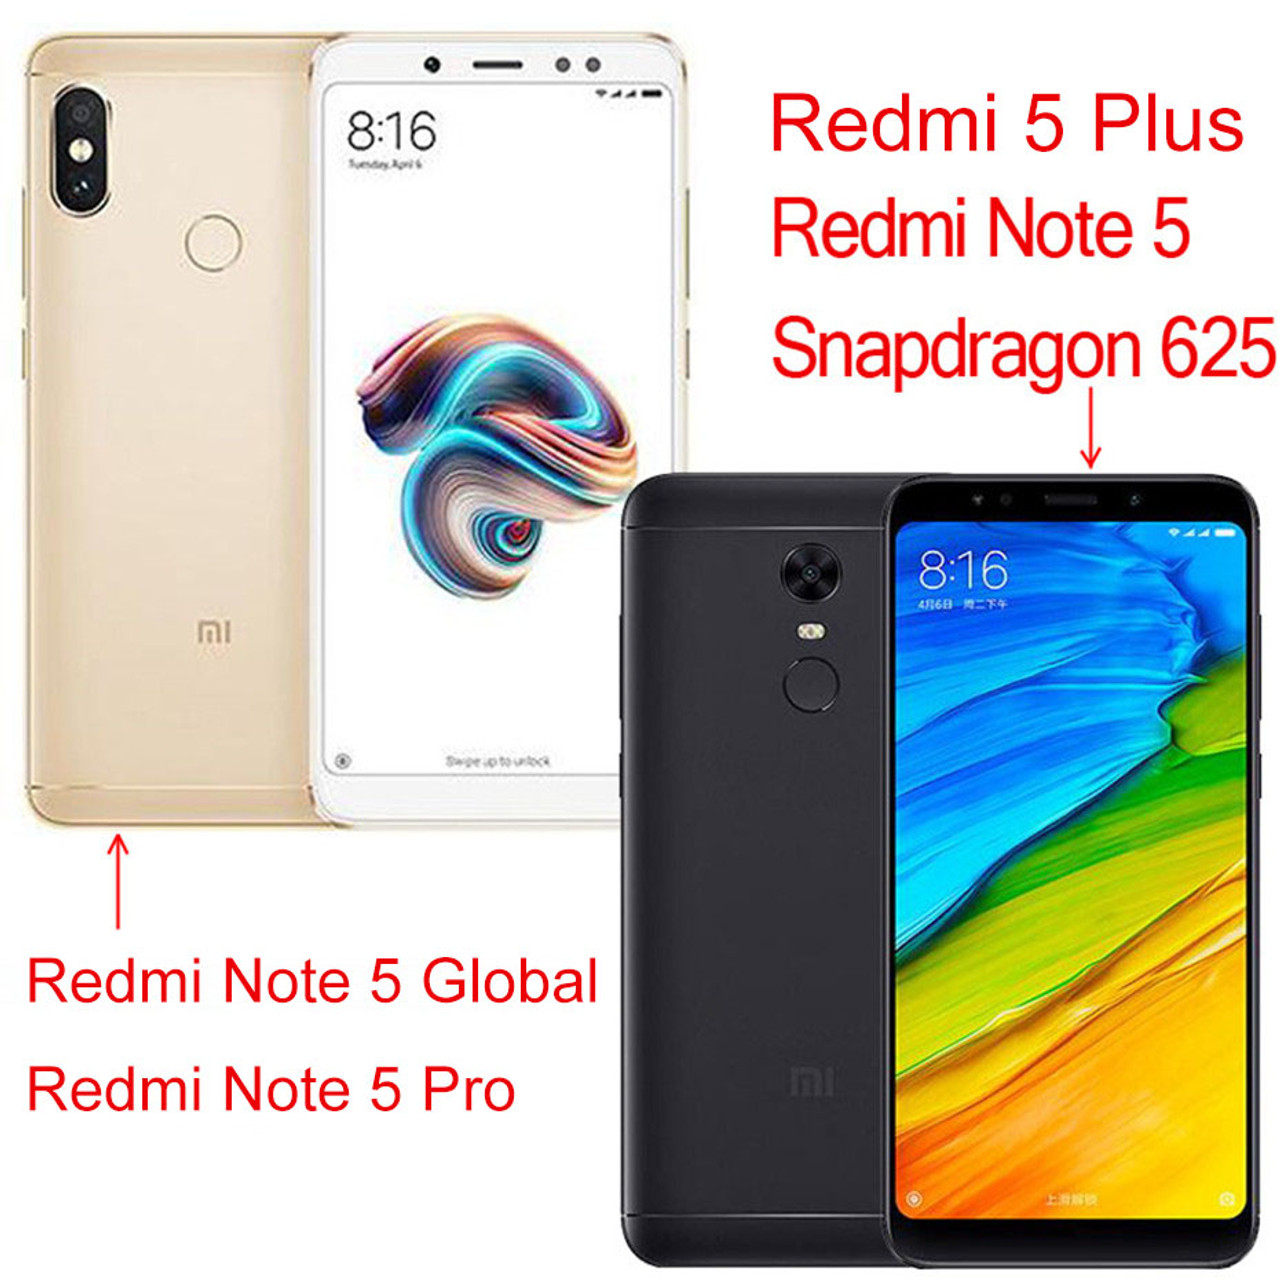 Thouport Case For Xiaomi Redmi Note 5 Pro Redmi 5 Plus Shockproof Hybrid PC  Silicone Cover For Xiaomi Redmi Note 5 Global Case